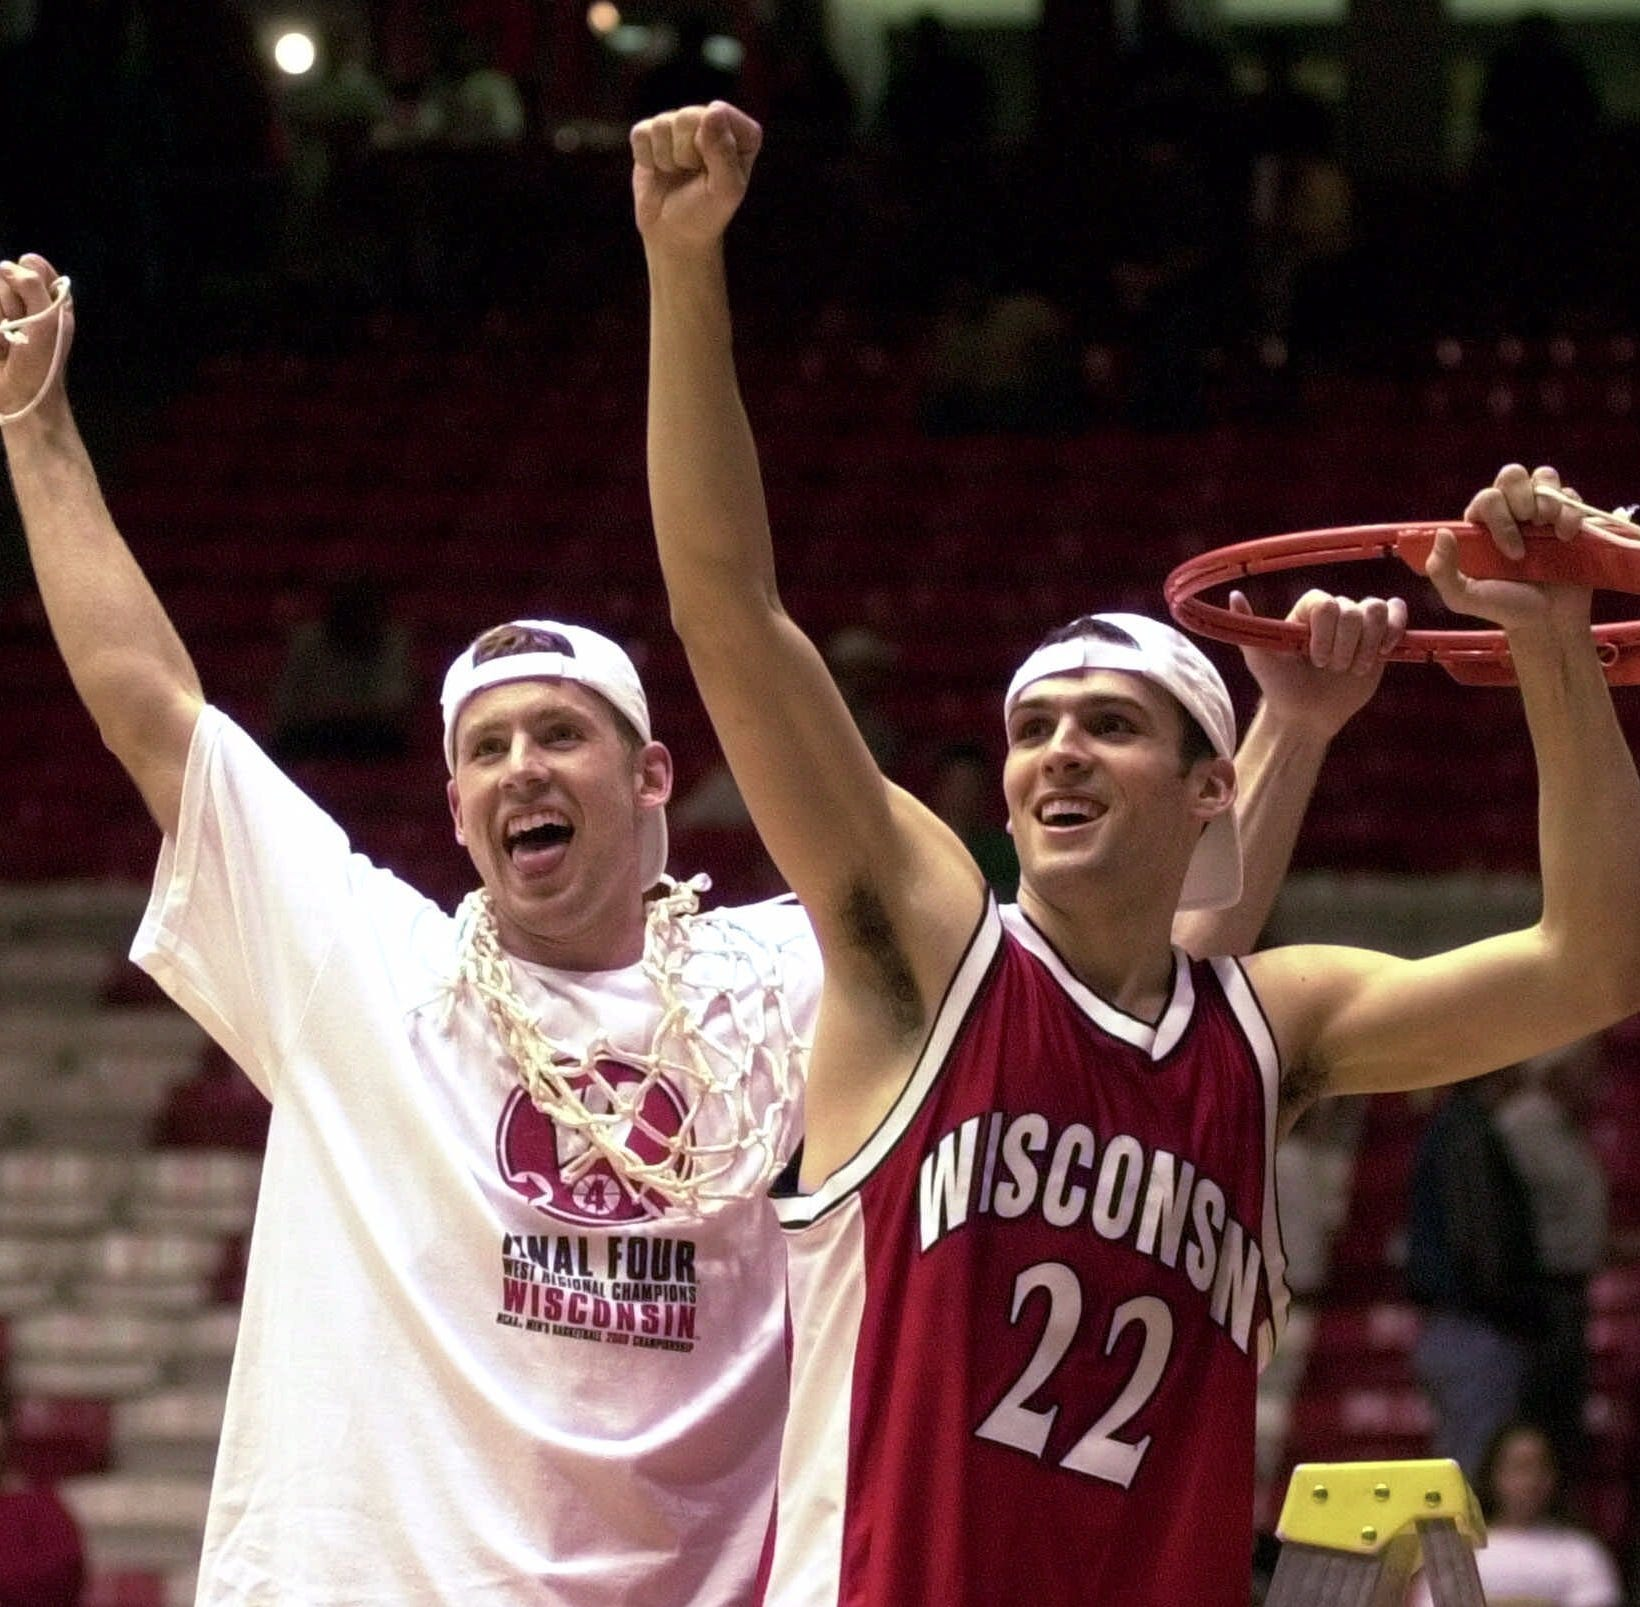 Wisconsin's Jon Bryant, left, and Mike Kelley...